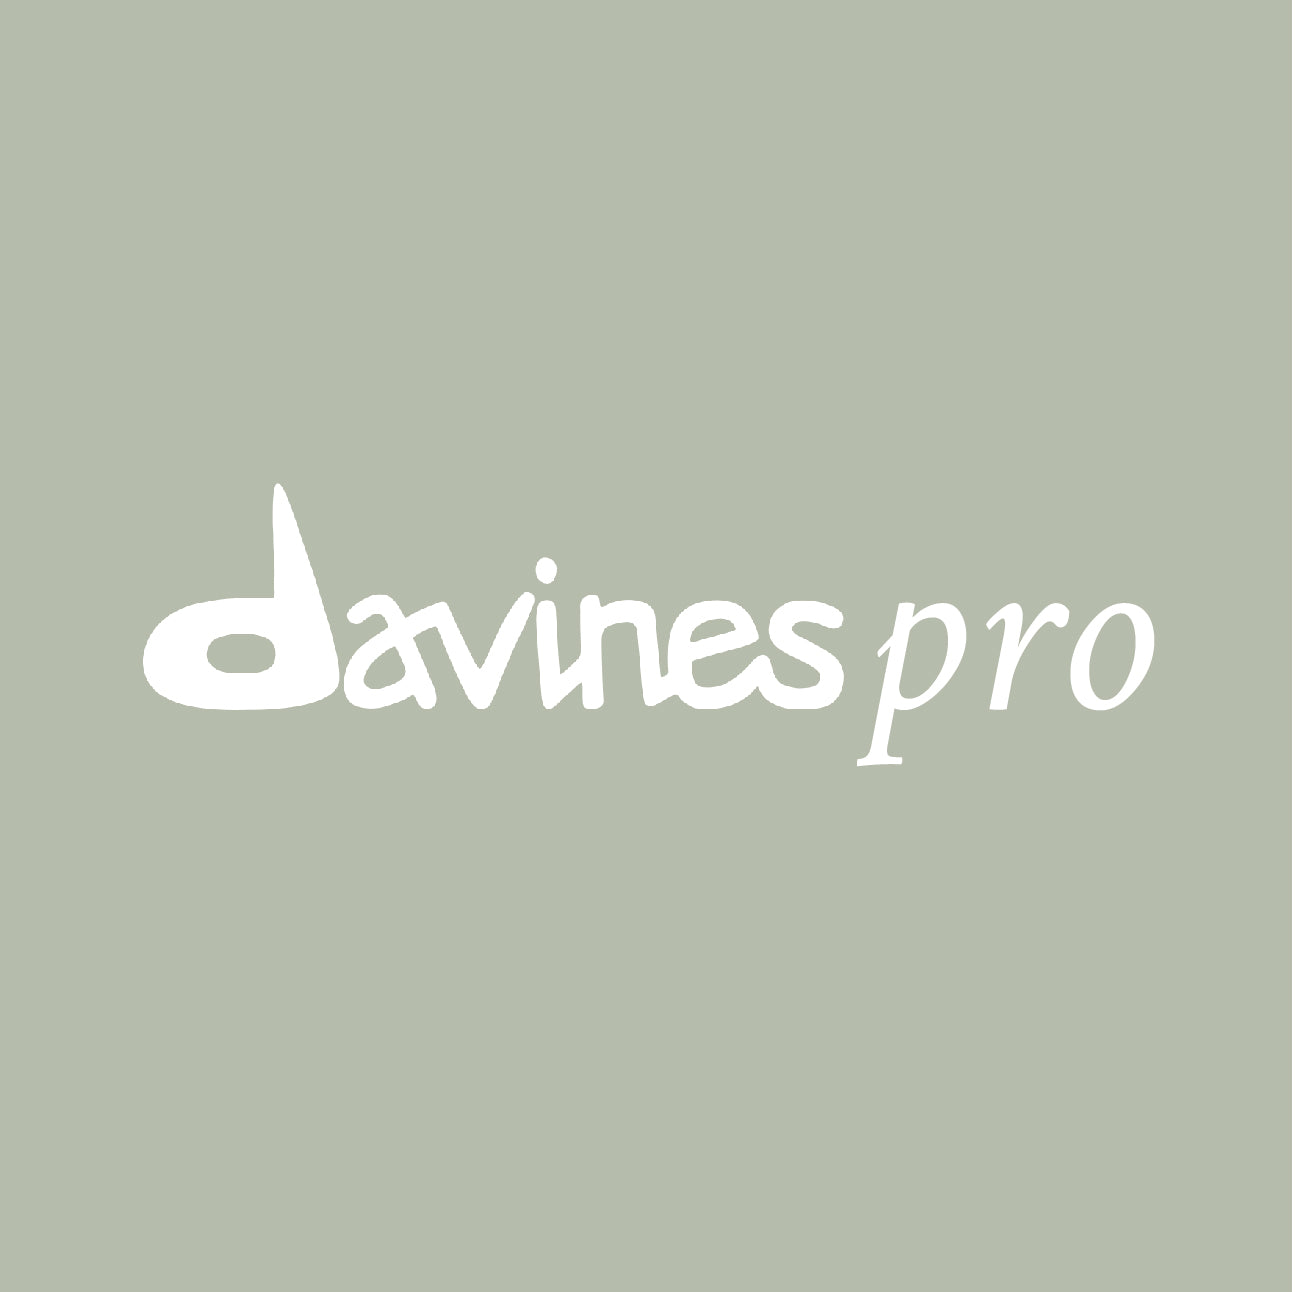 Visit our professional site DavinesPro